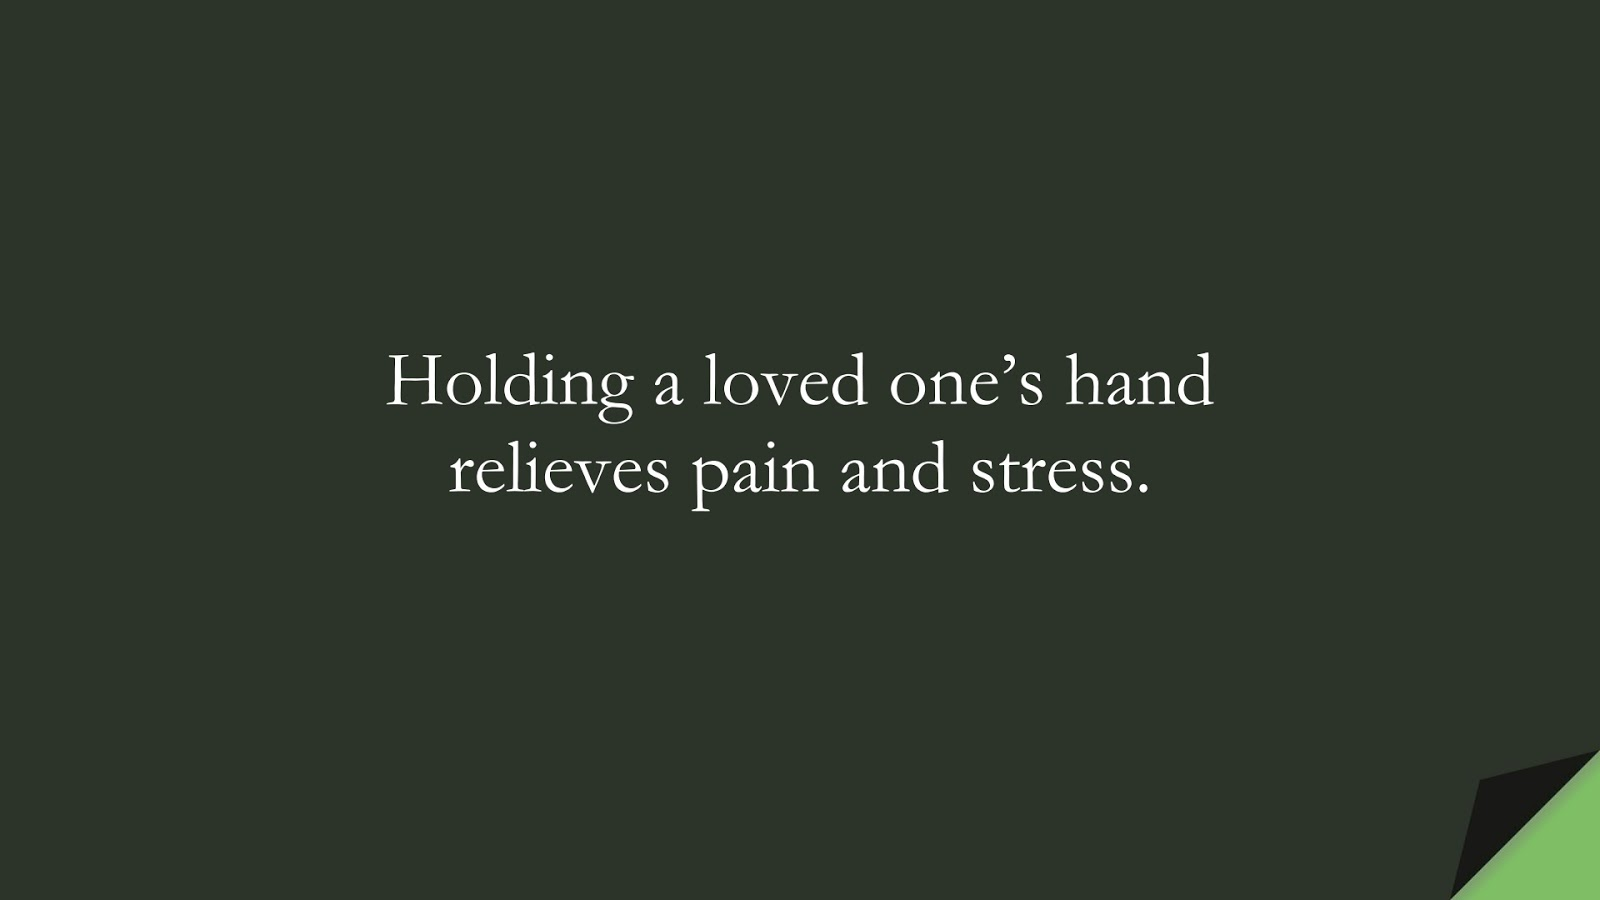 Holding a loved one's hand relieves pain and stress.FALSE